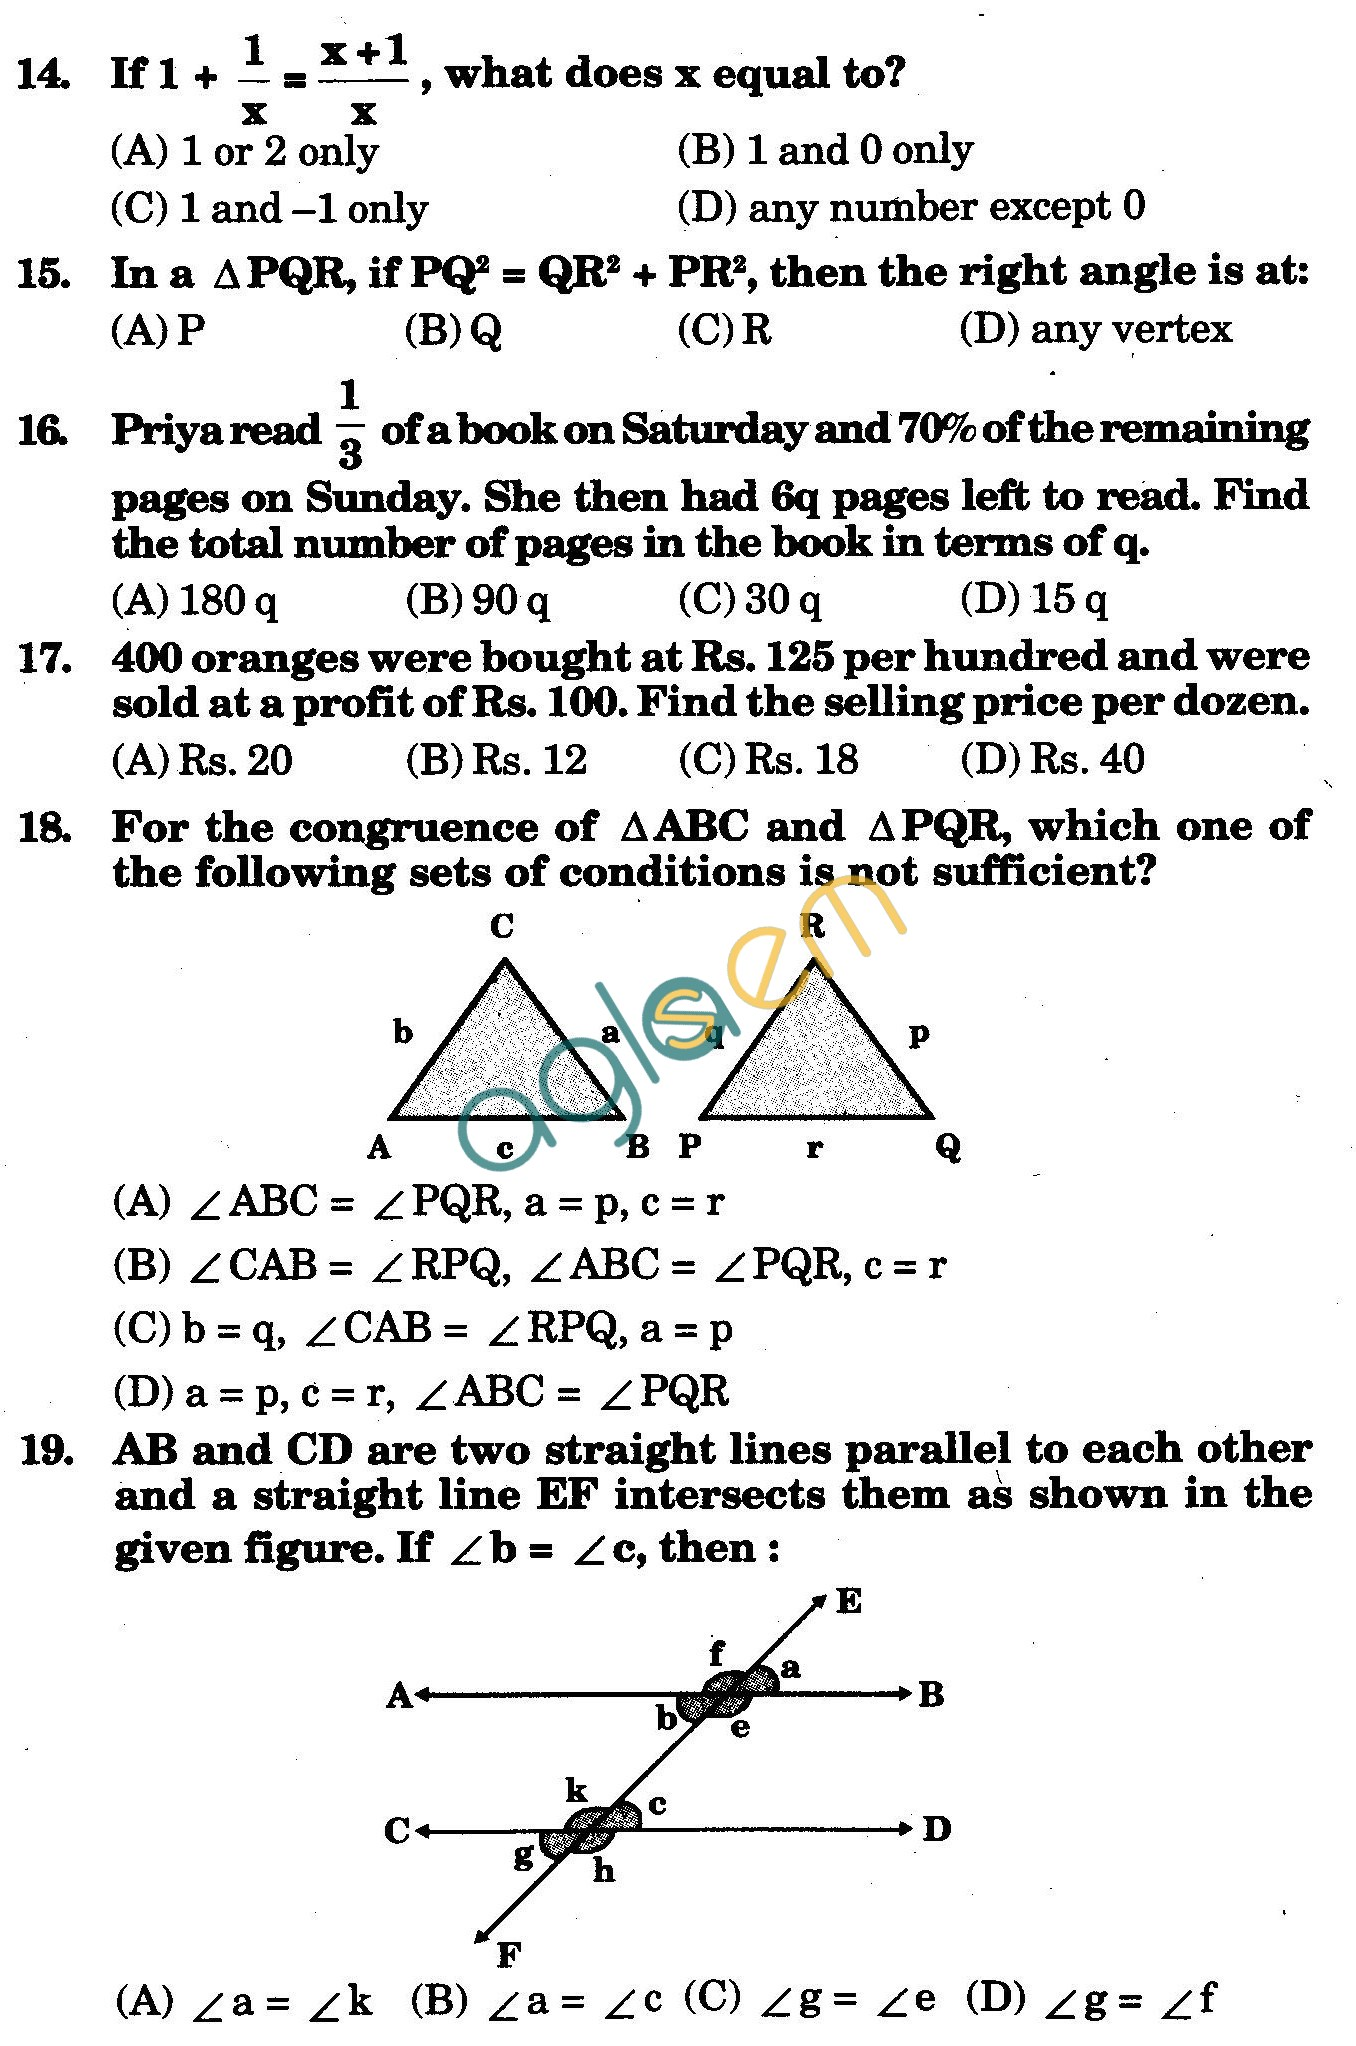 NSTSE 2010 Class VII Question Paper with Answers - Mathematics